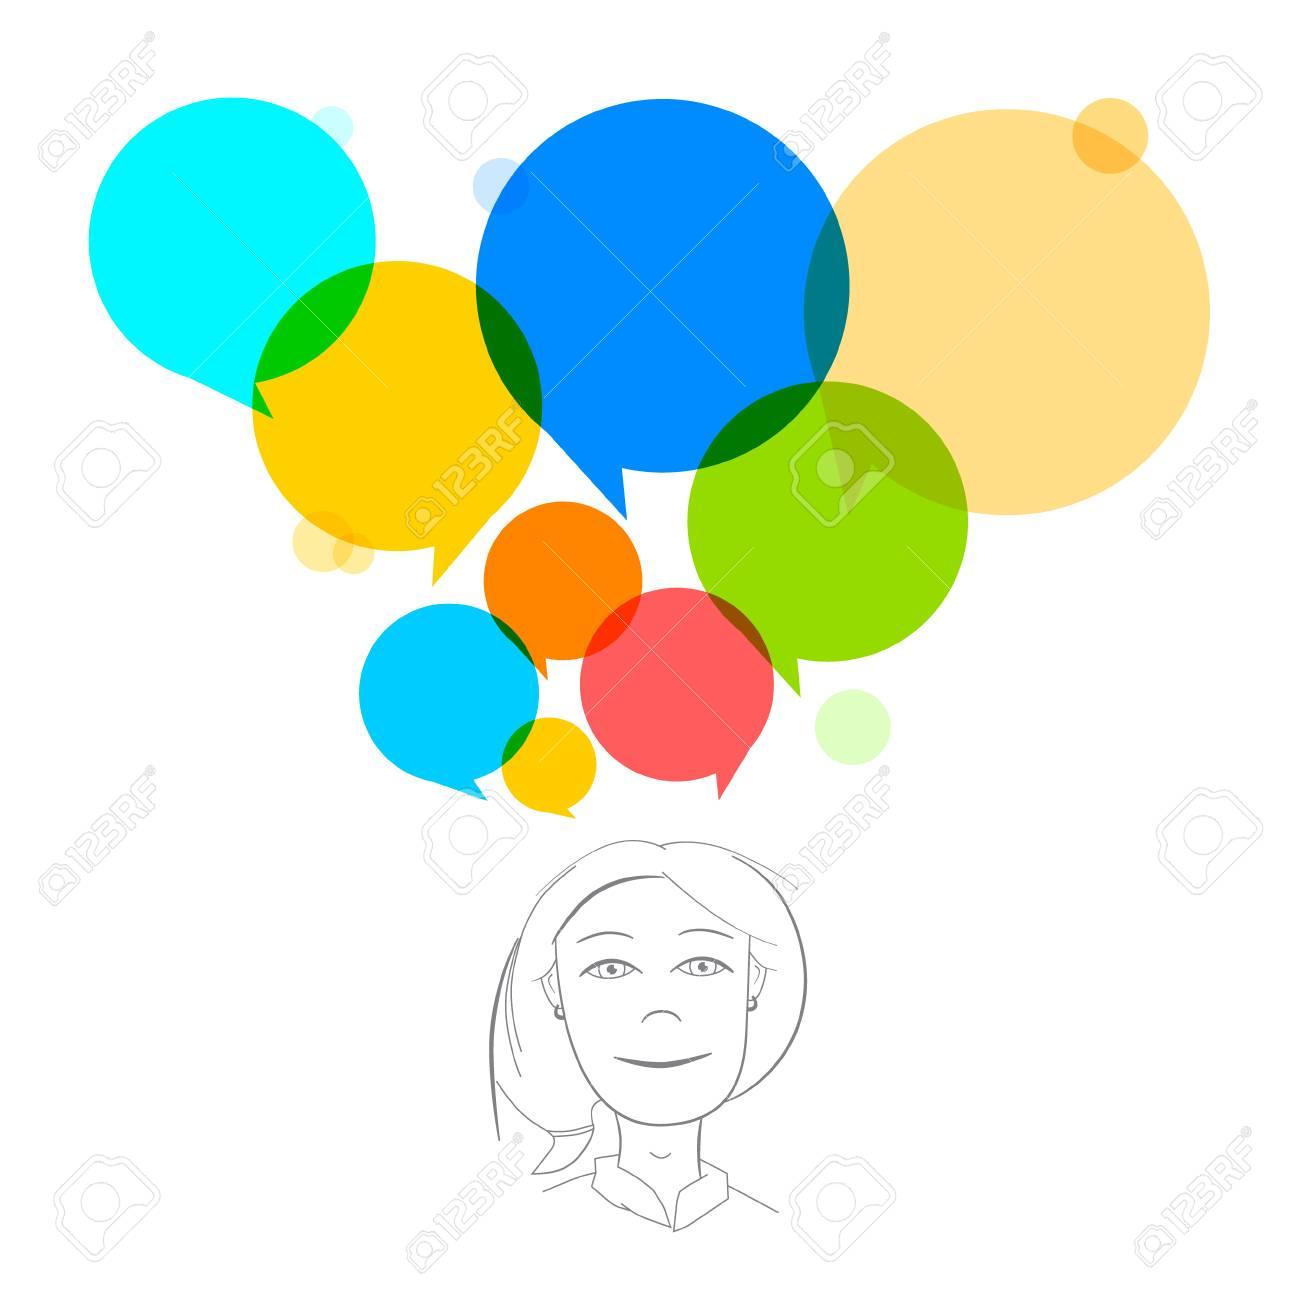 Vector Business Woman Illustration with Colorful Speech Bubbles Stock Vector - 27656561